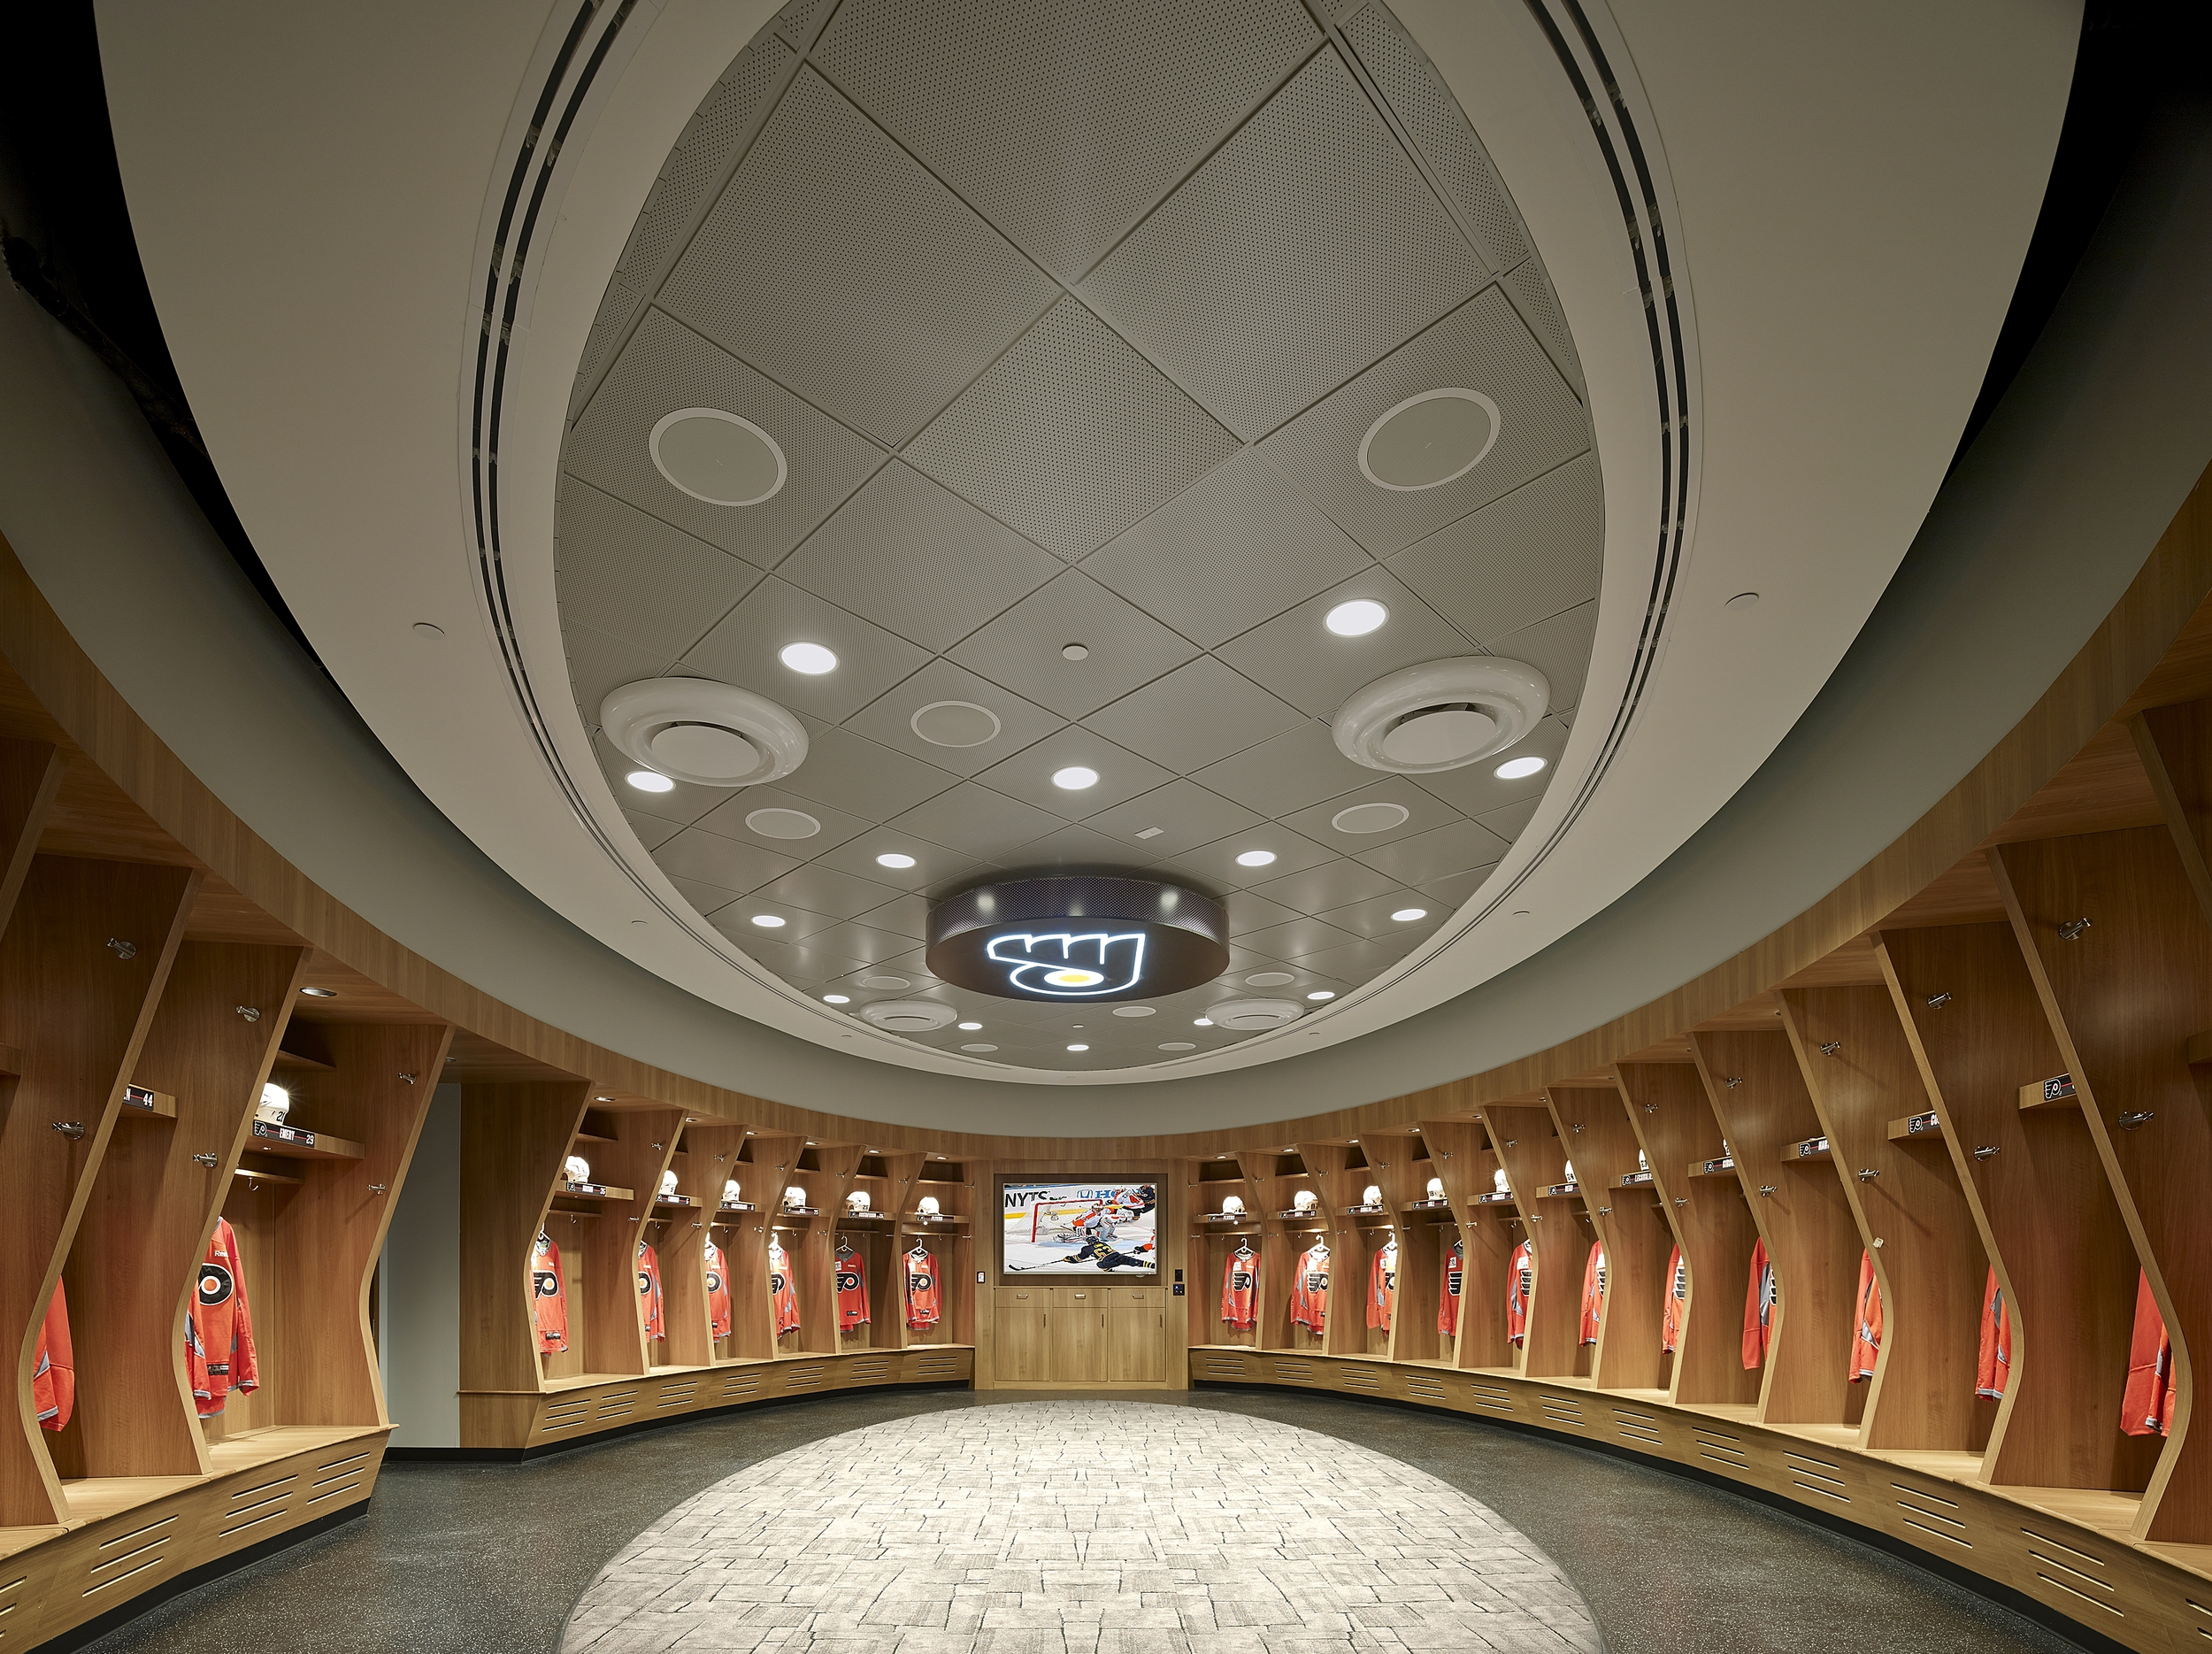 This project for the existing Flyers Training Facility,located within the Virtua Ice Skating Complex, included limited exterior improvements but a complete interiorrenovation.